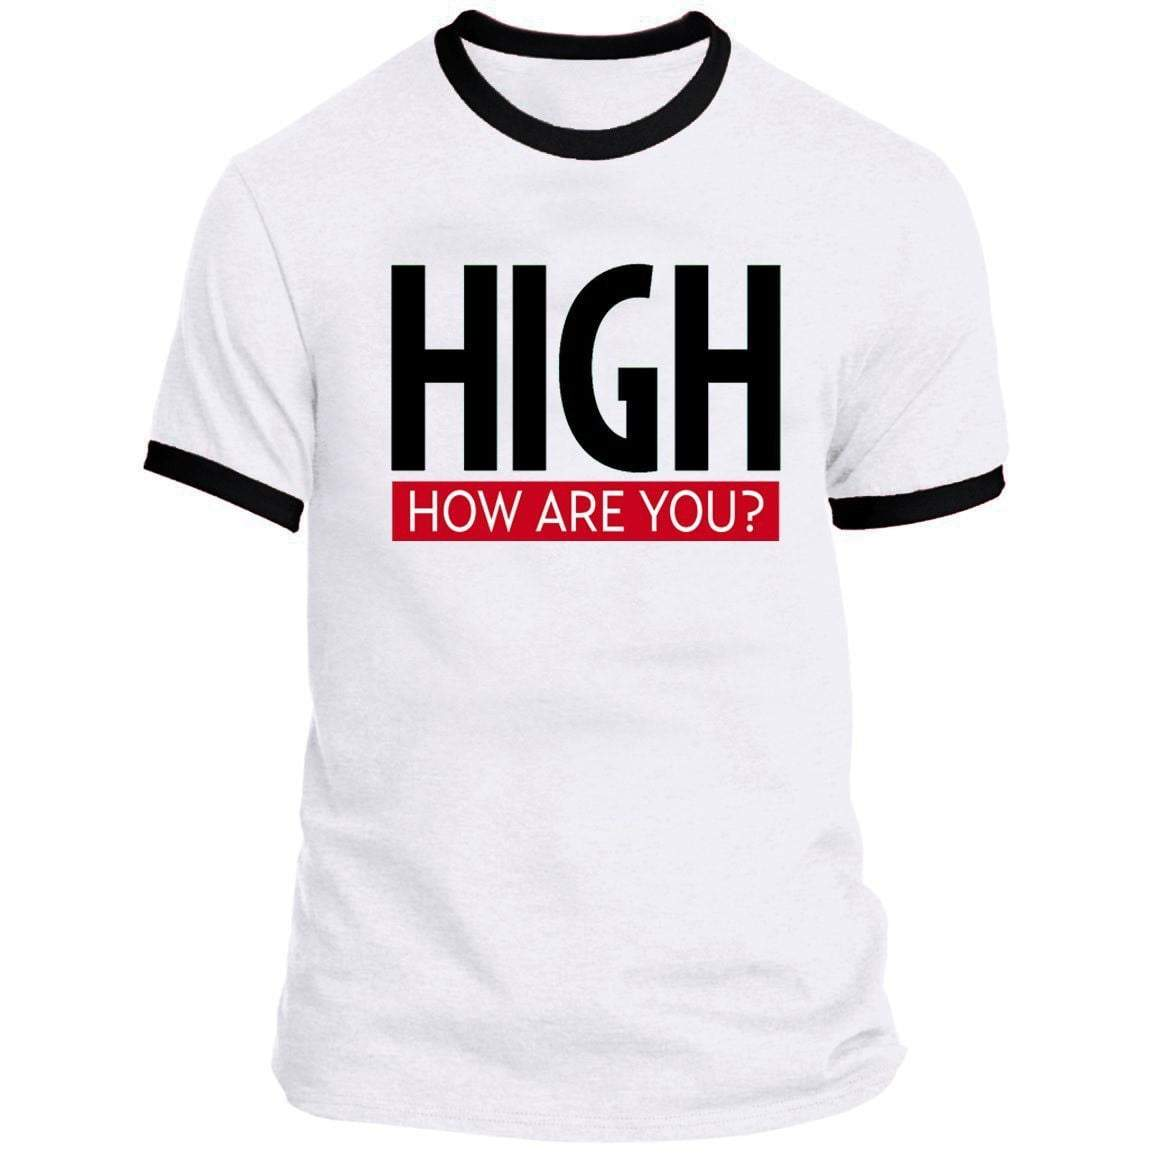 HIGH HOW ARE YOU